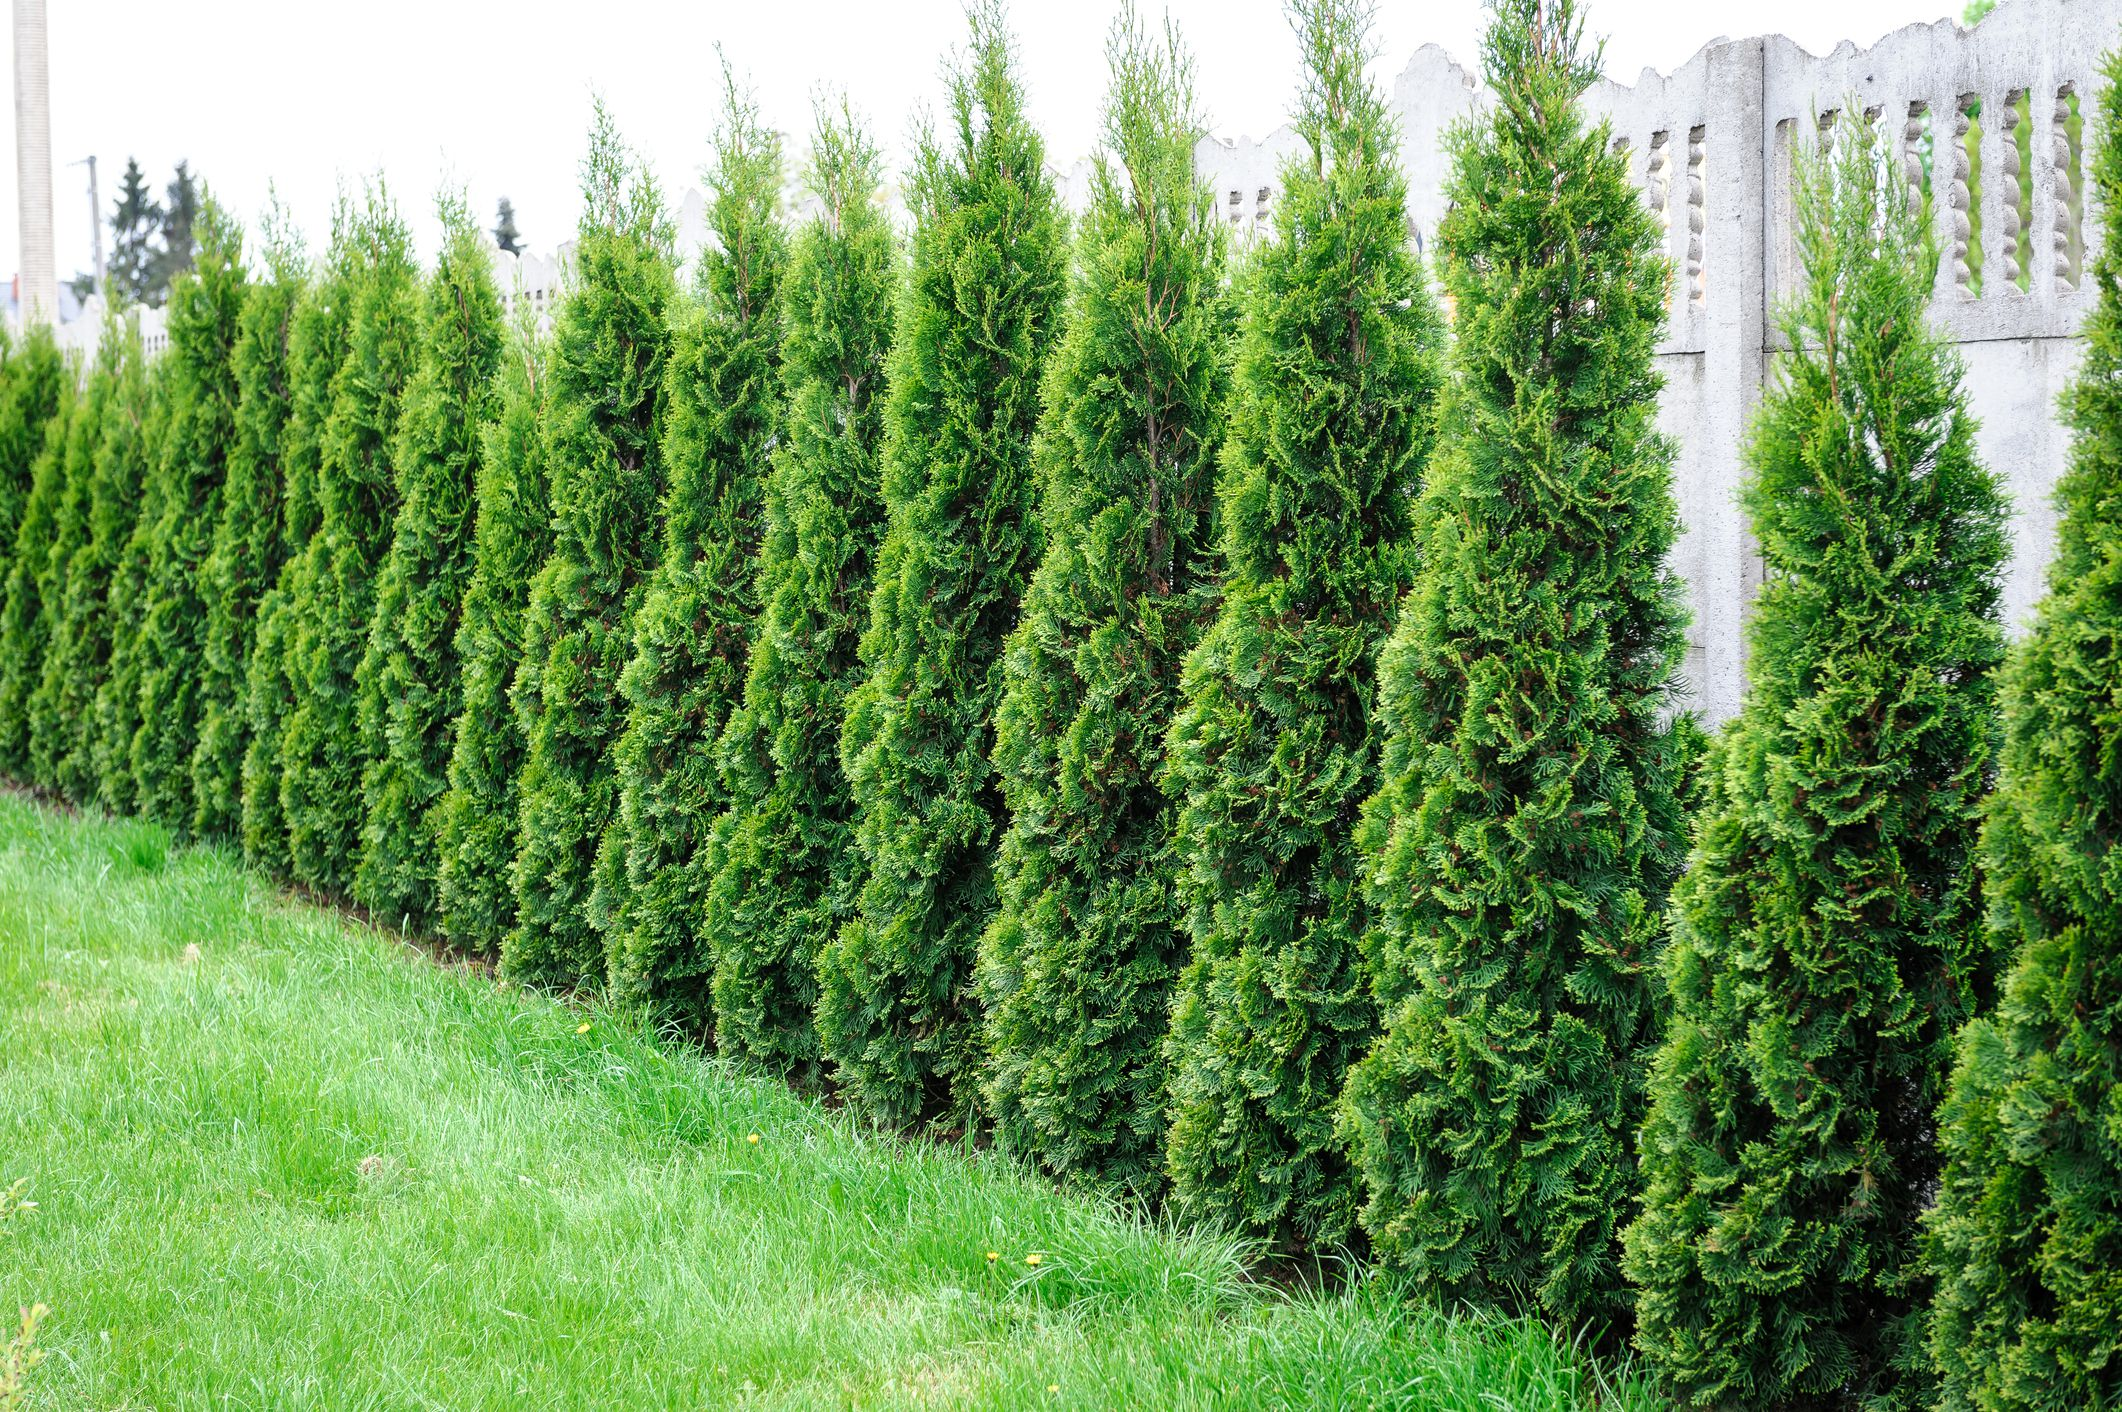 Row of arborvitae in front of a fence.